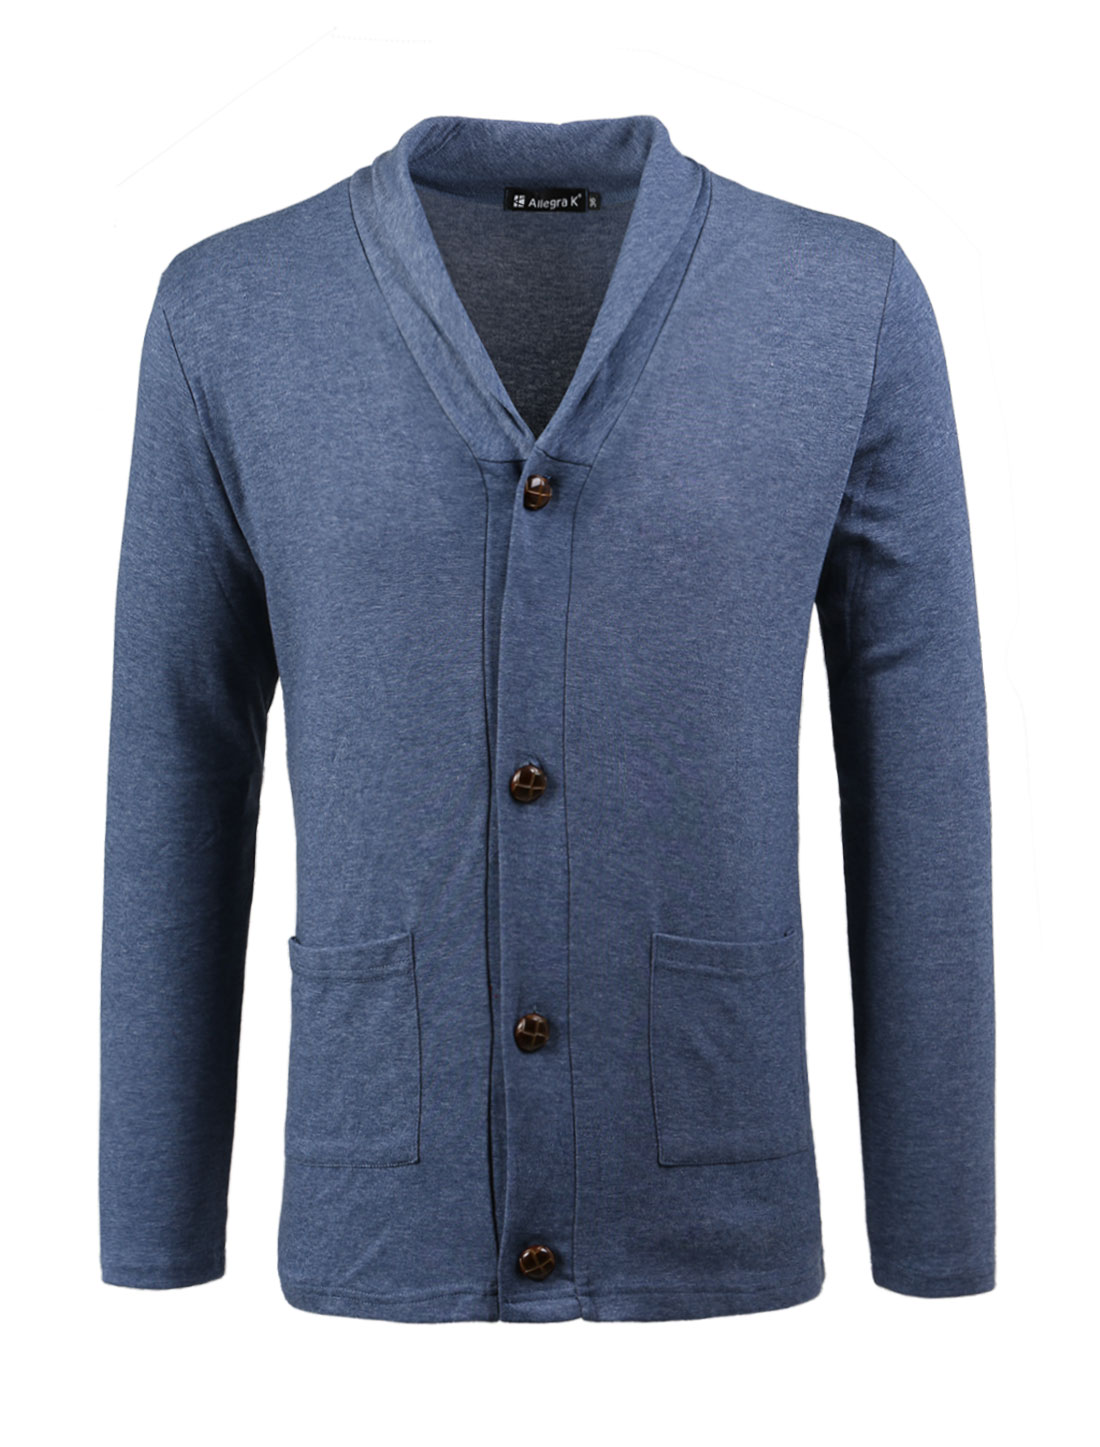 Button Closed Long Sleeves Navy Blue Knit Cardigan for Men M